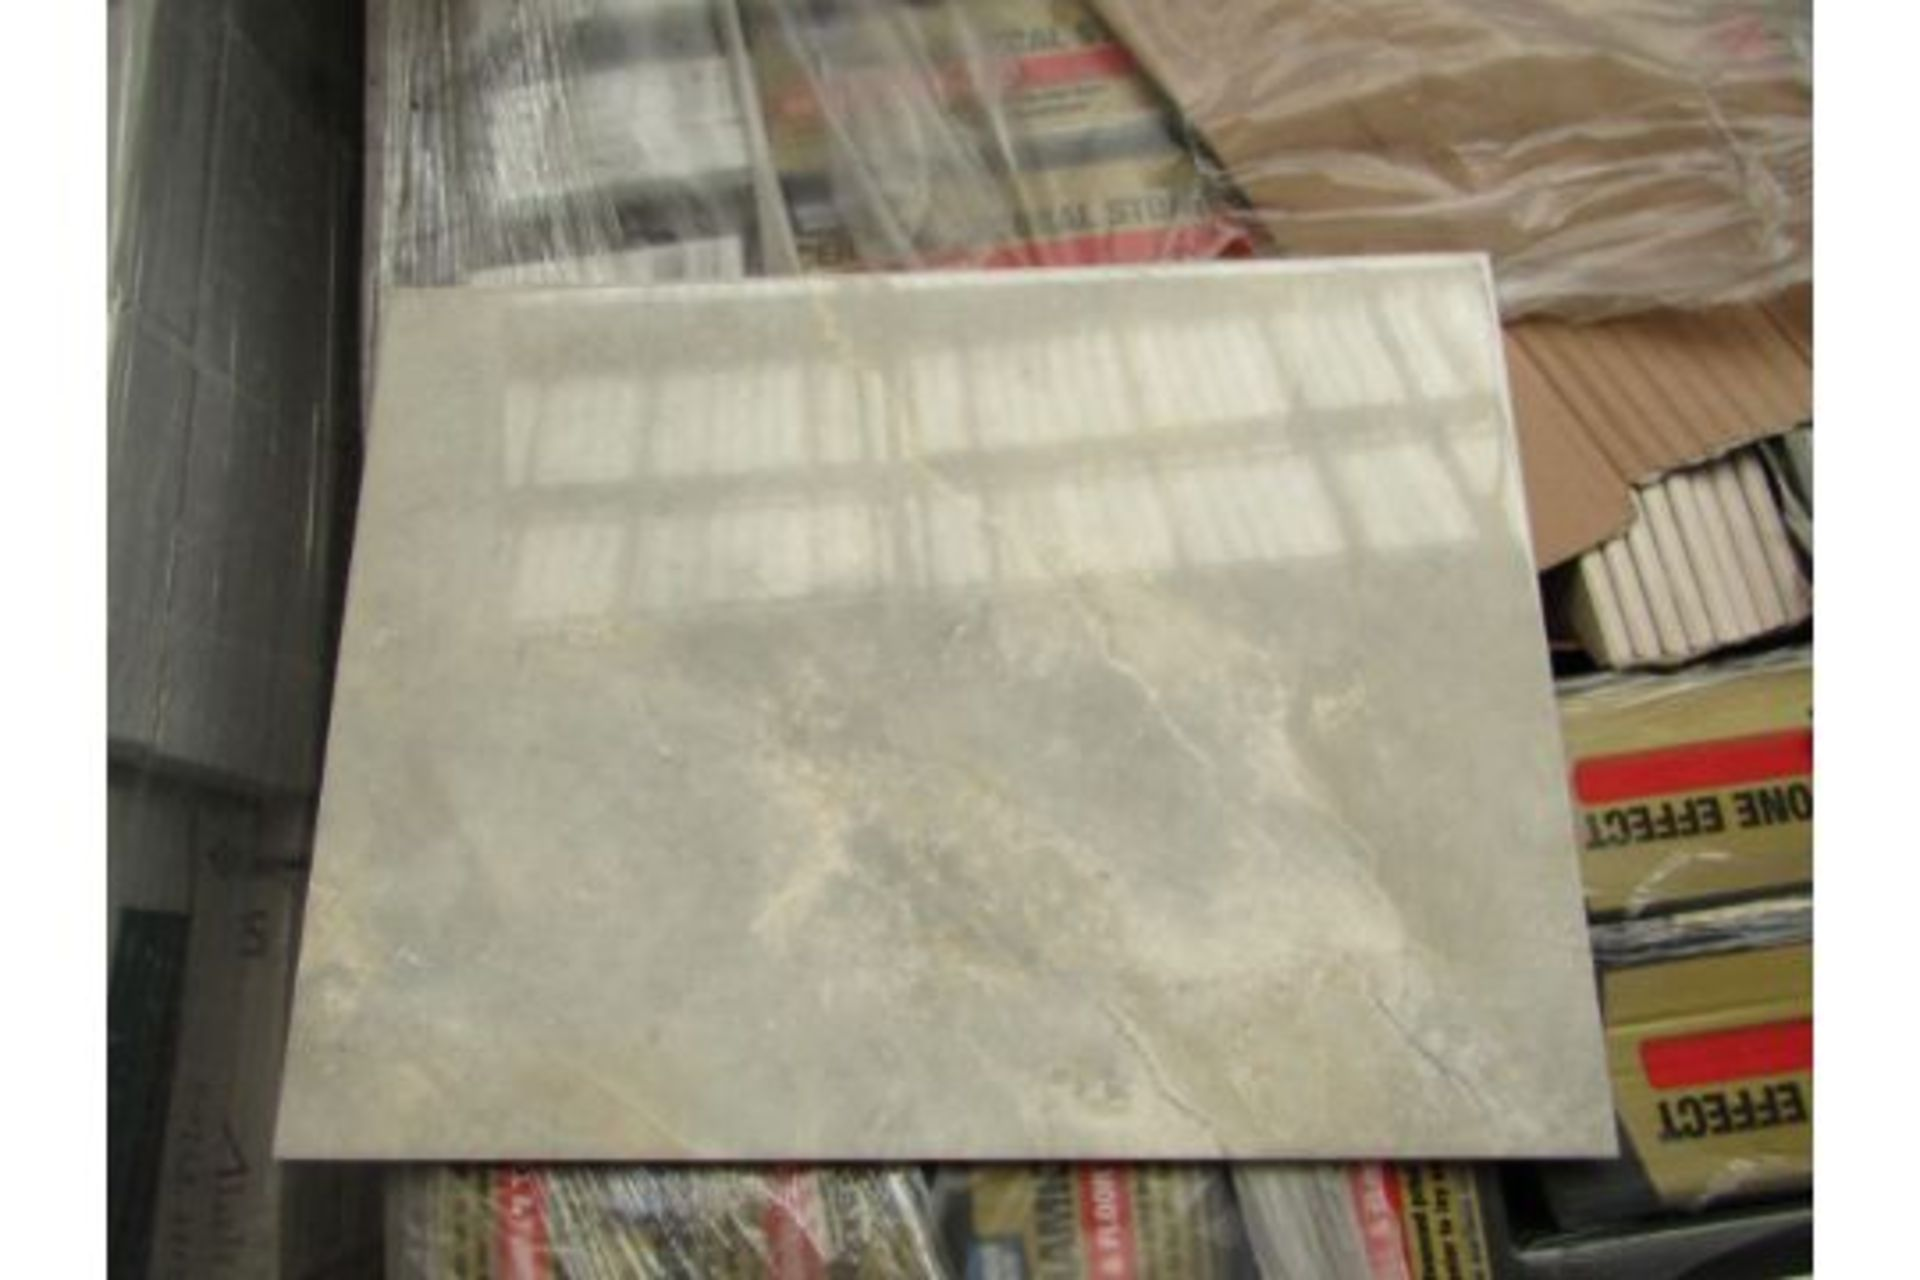 Pallet of 24x Packs of 8 Onyx Gloss 400x300 wall and Floor Tiles By Johnsons, New, the pallet weighs